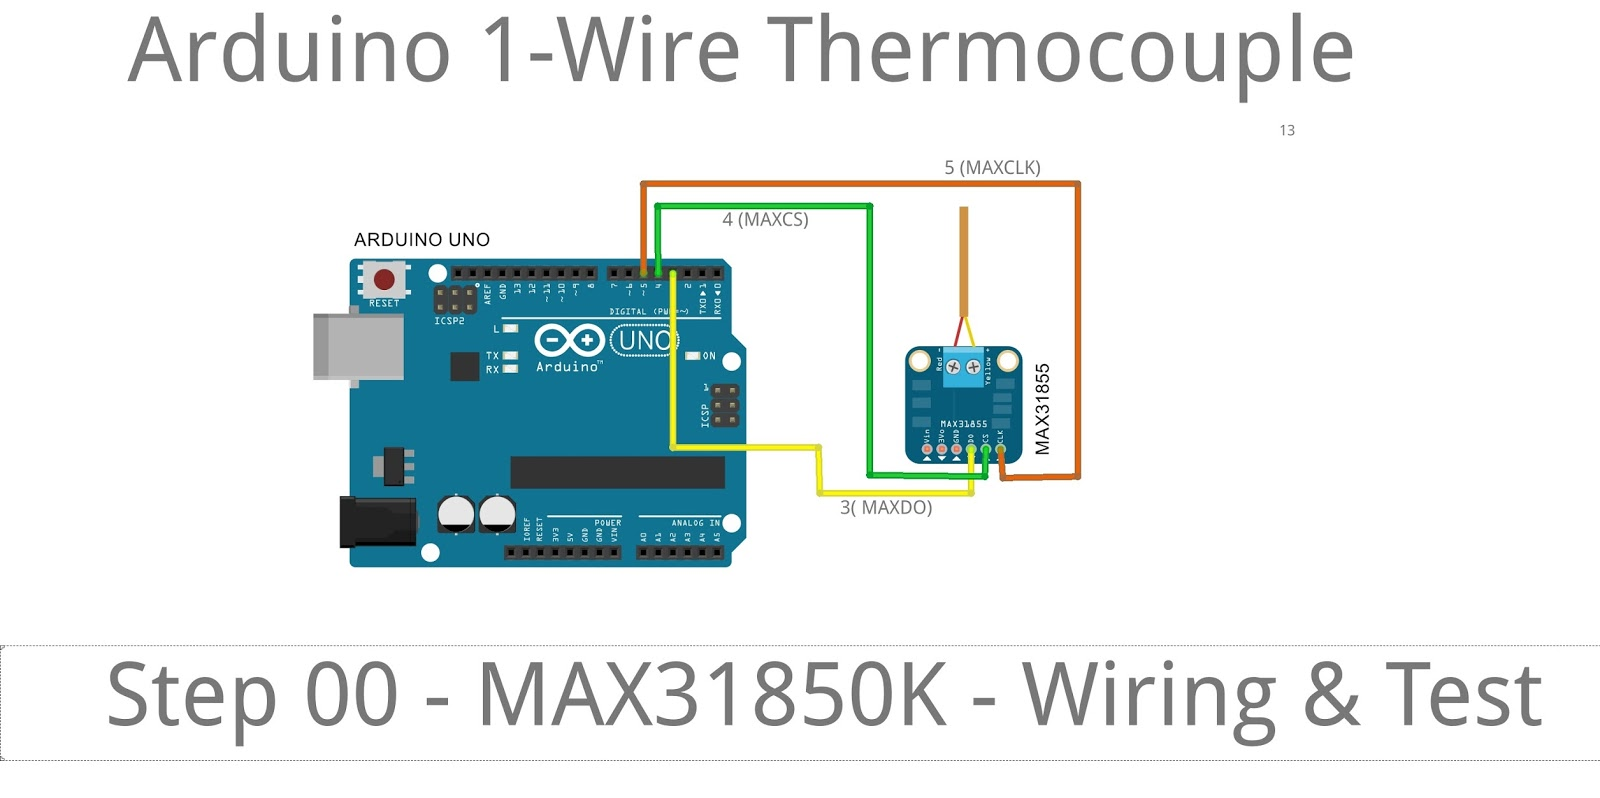 hight resolution of max31855 is an spi interface thermocouple amplifier pinout do 3 ckl 4 cs 5 3v3 gnd here is the schematic